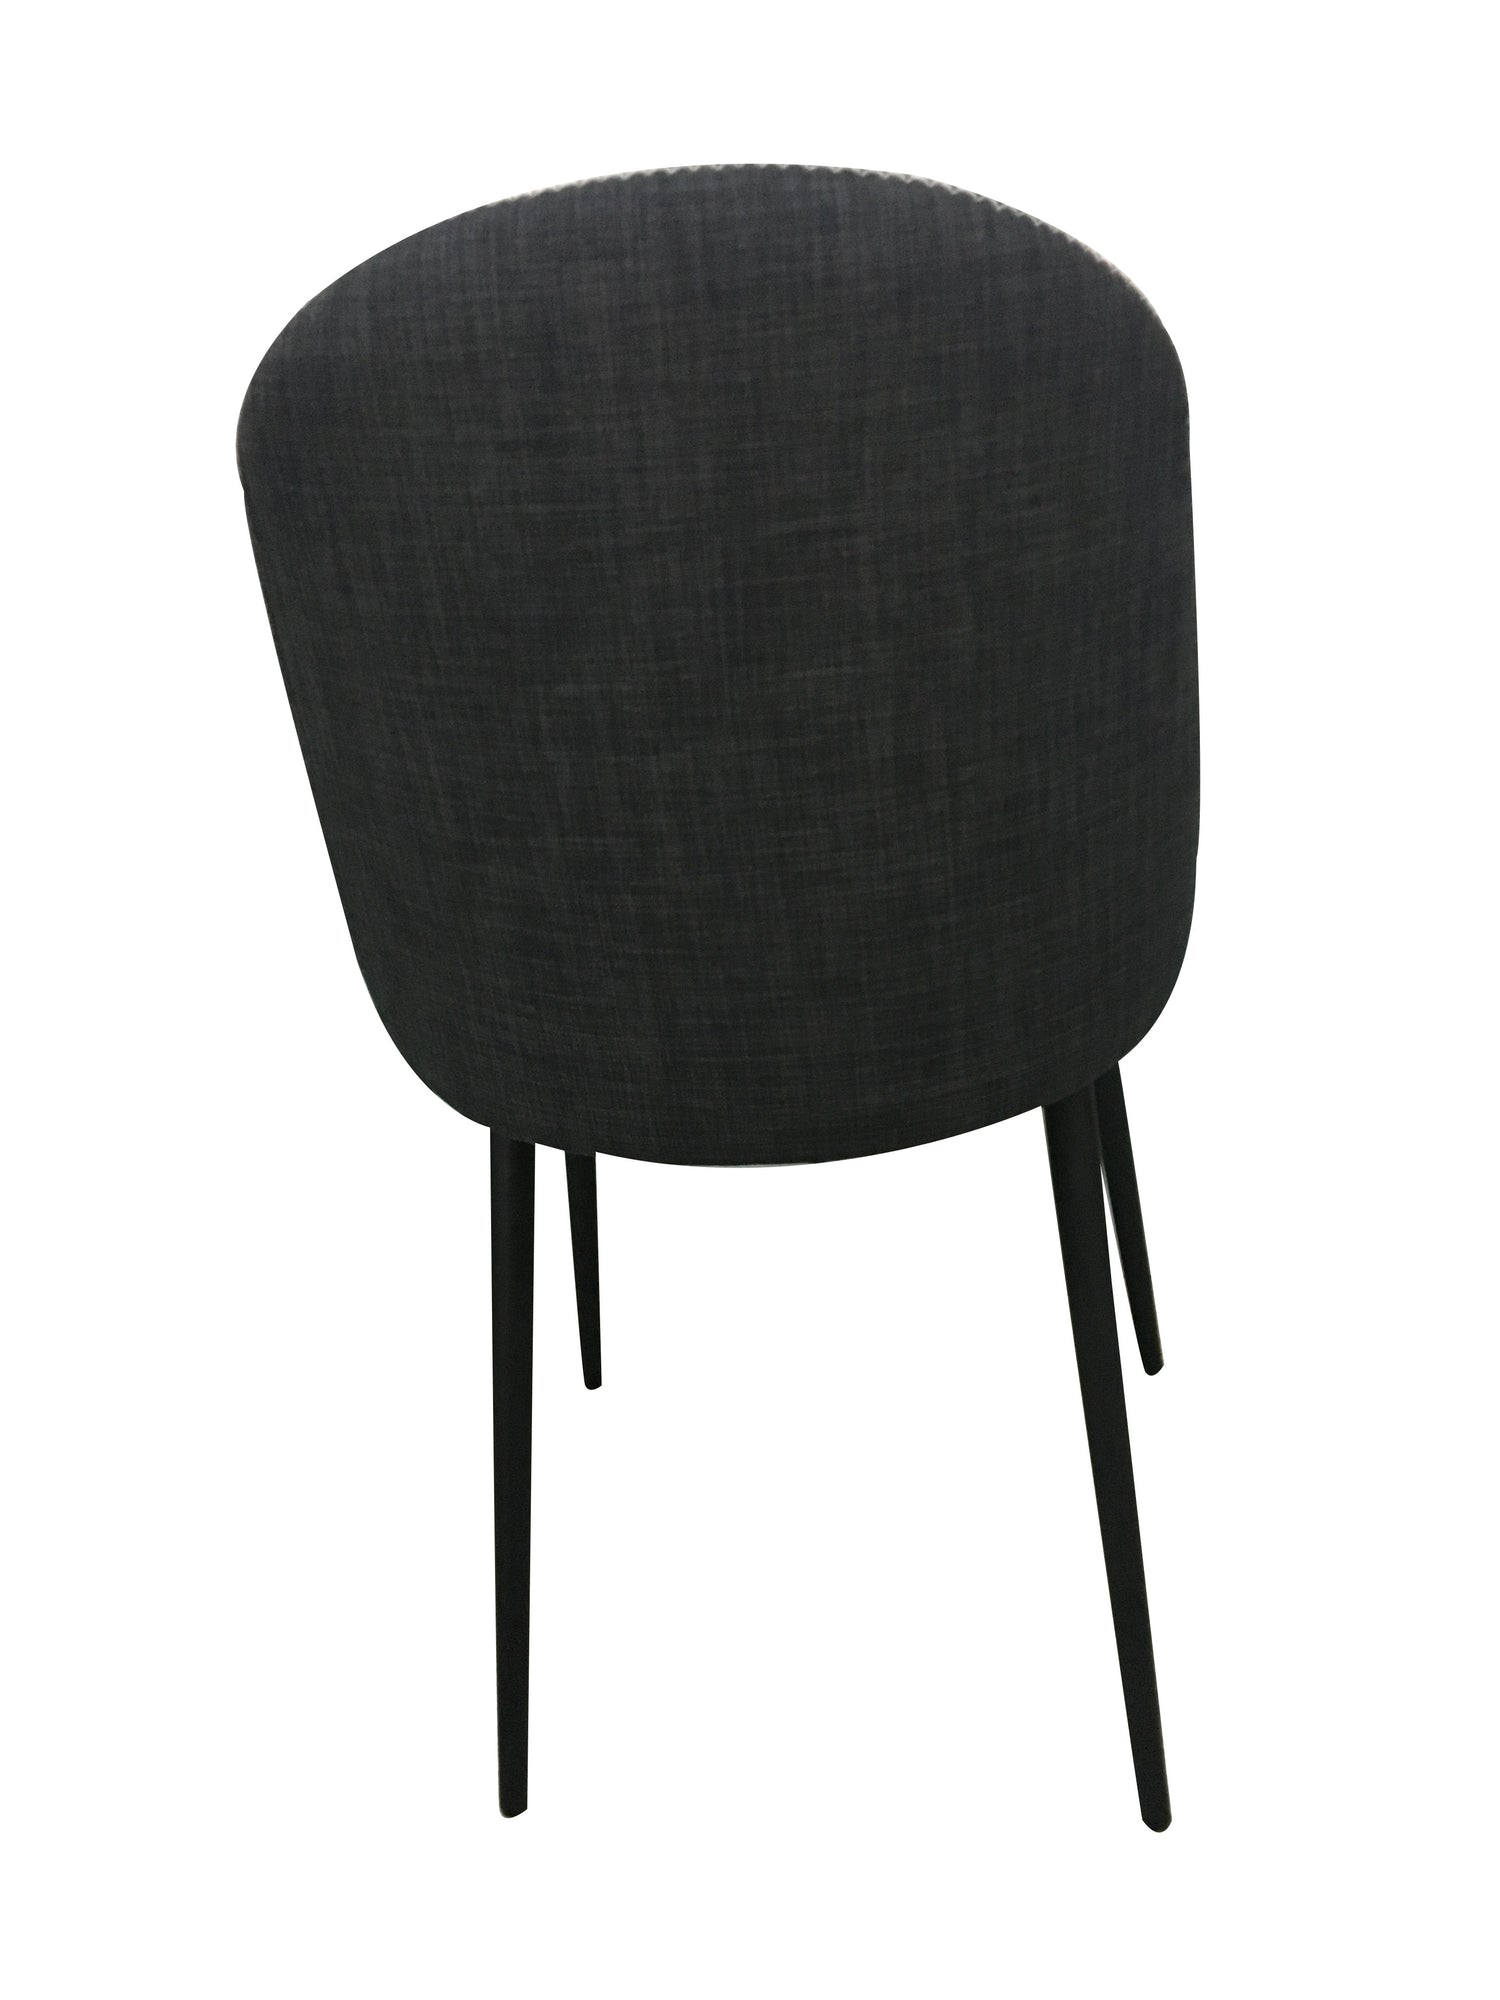 Rapallo Dining Chair Santorini Black/Grey